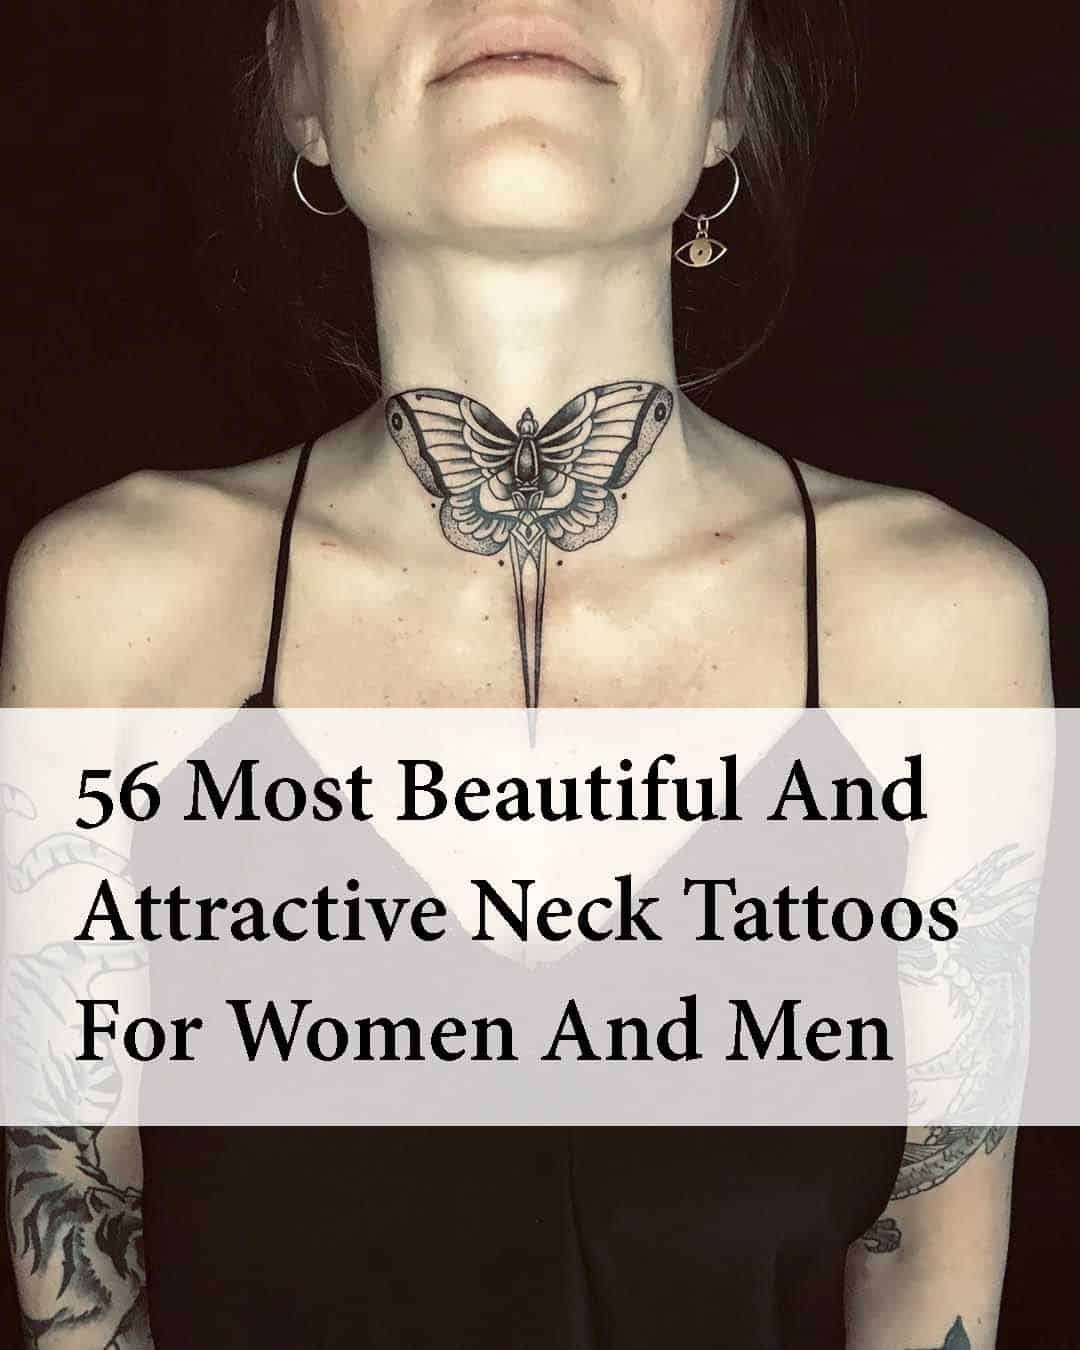 Neck Tattoos 50 Most Beautiful And Attractive Neck Tattoos